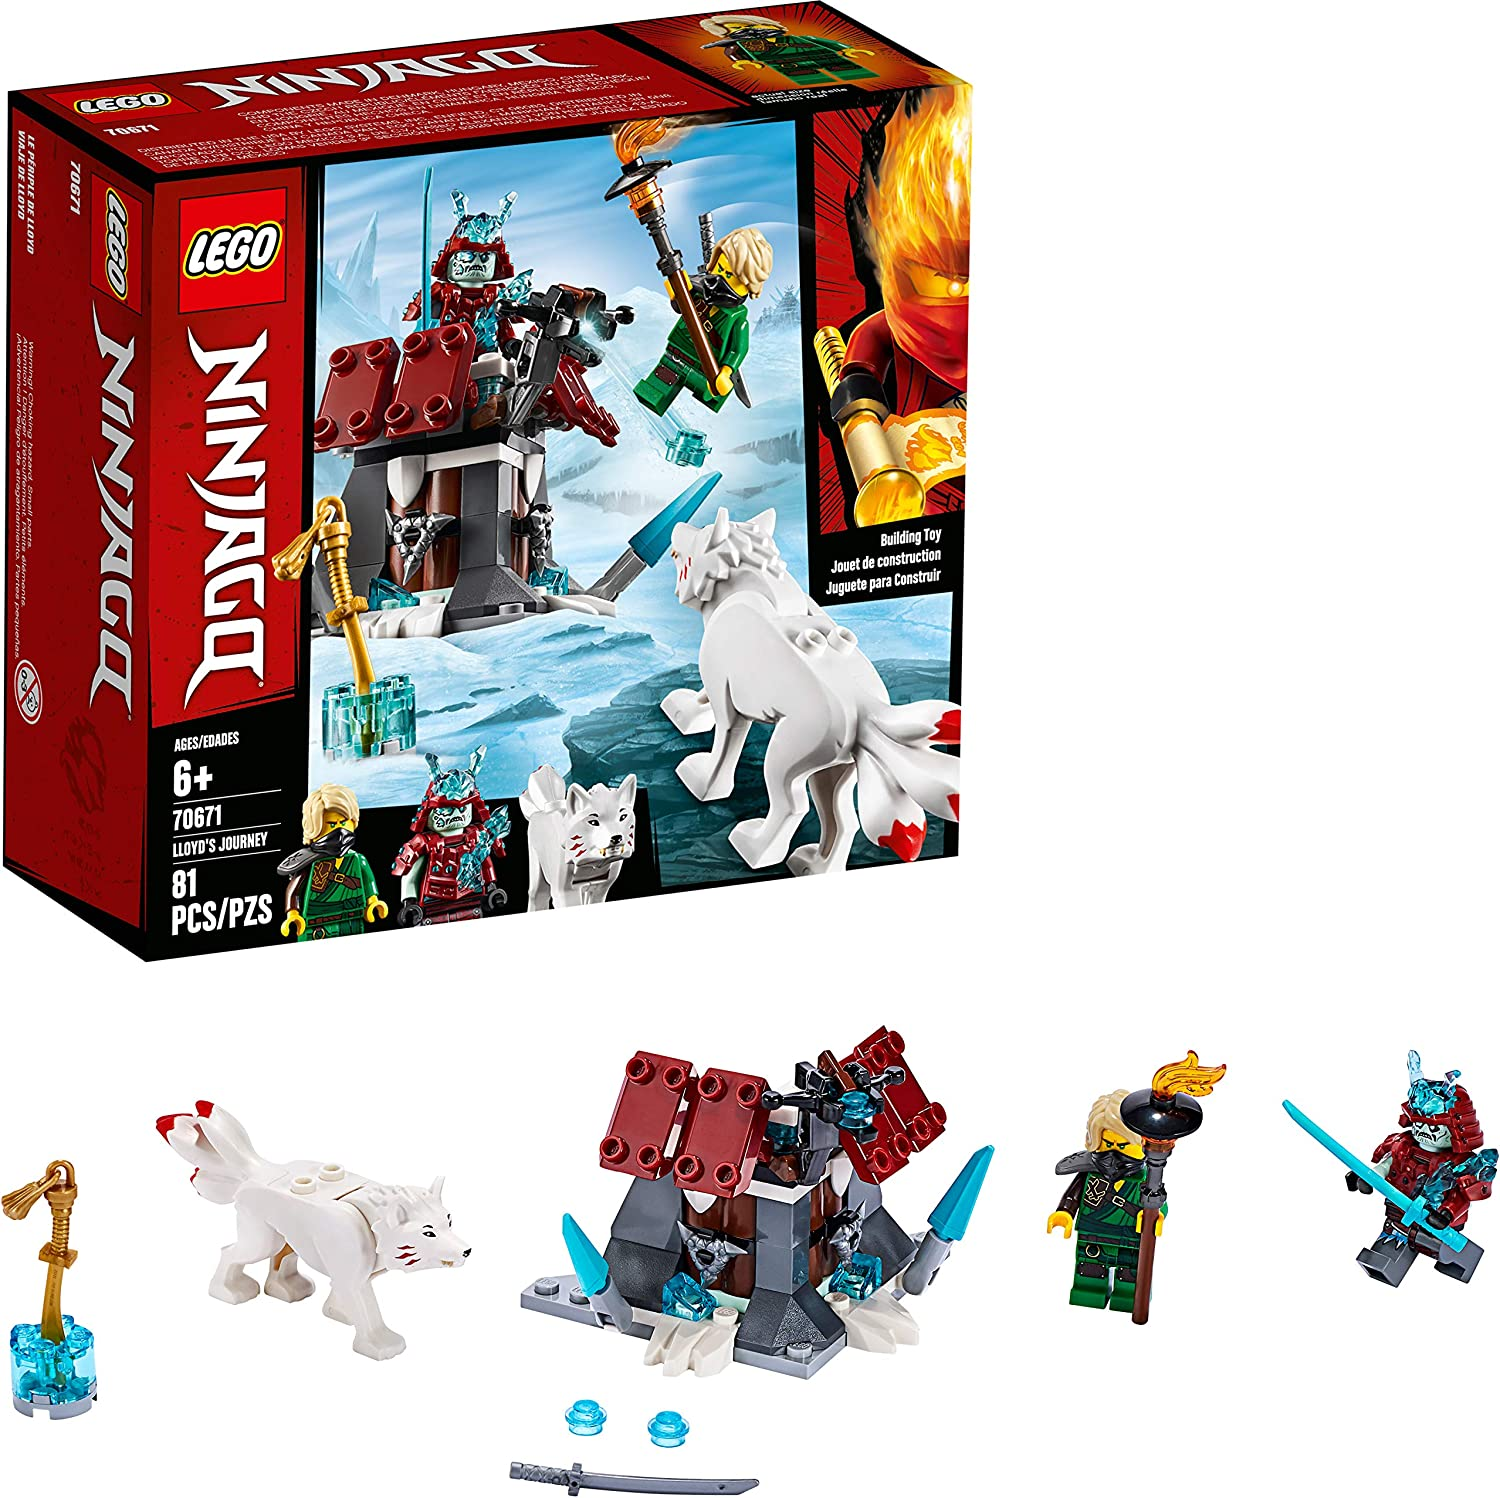 LEGO NINJAGO Lloyds Journey 70671 Building Kit, New 2019 (81 Pieces)